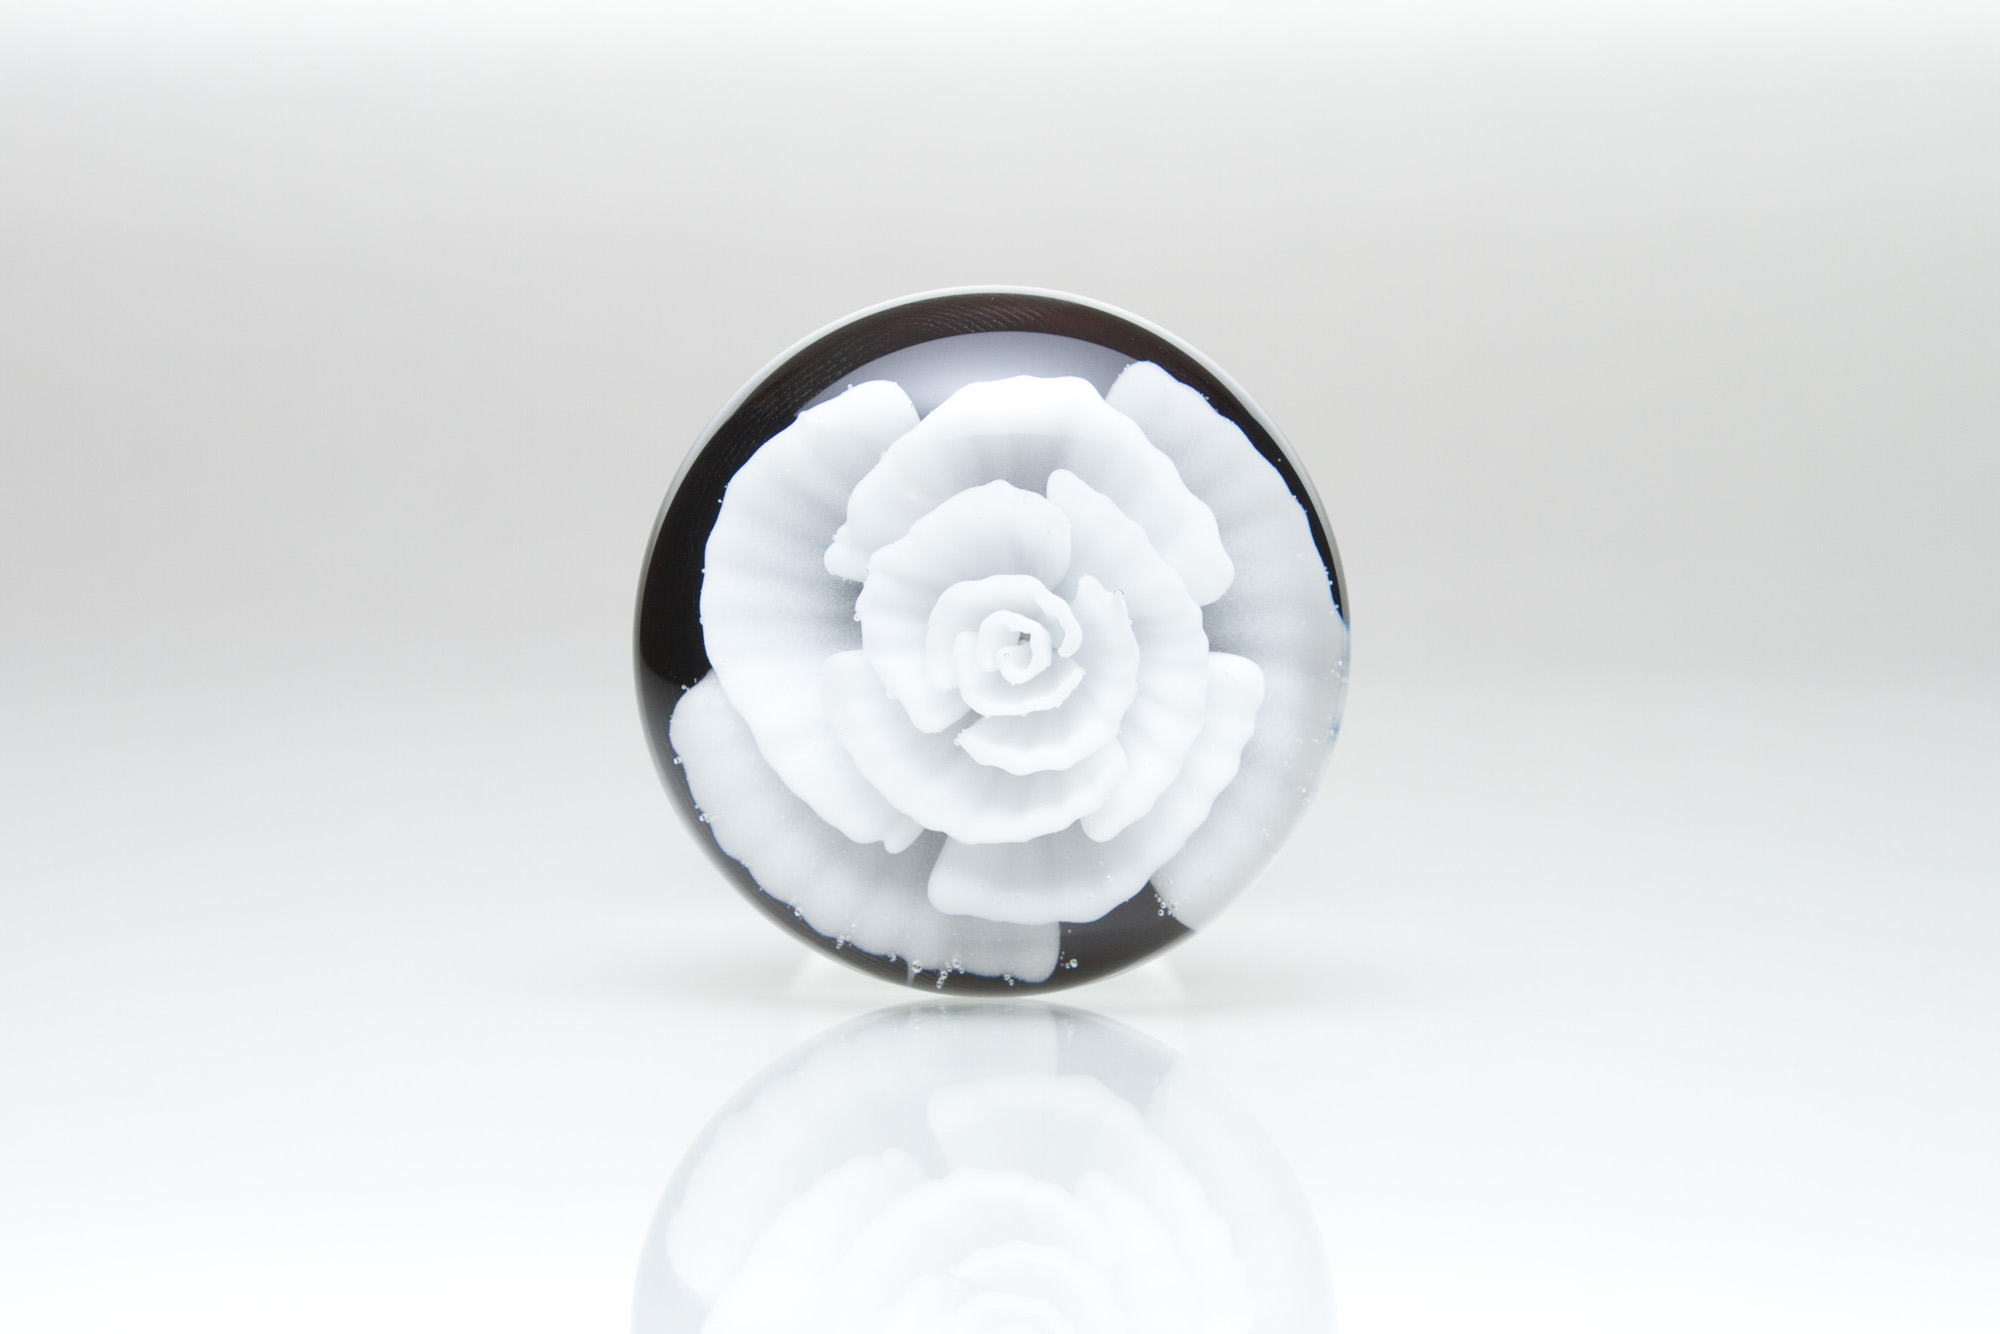 Back View white rose glass butt plug by Hedonic Glass